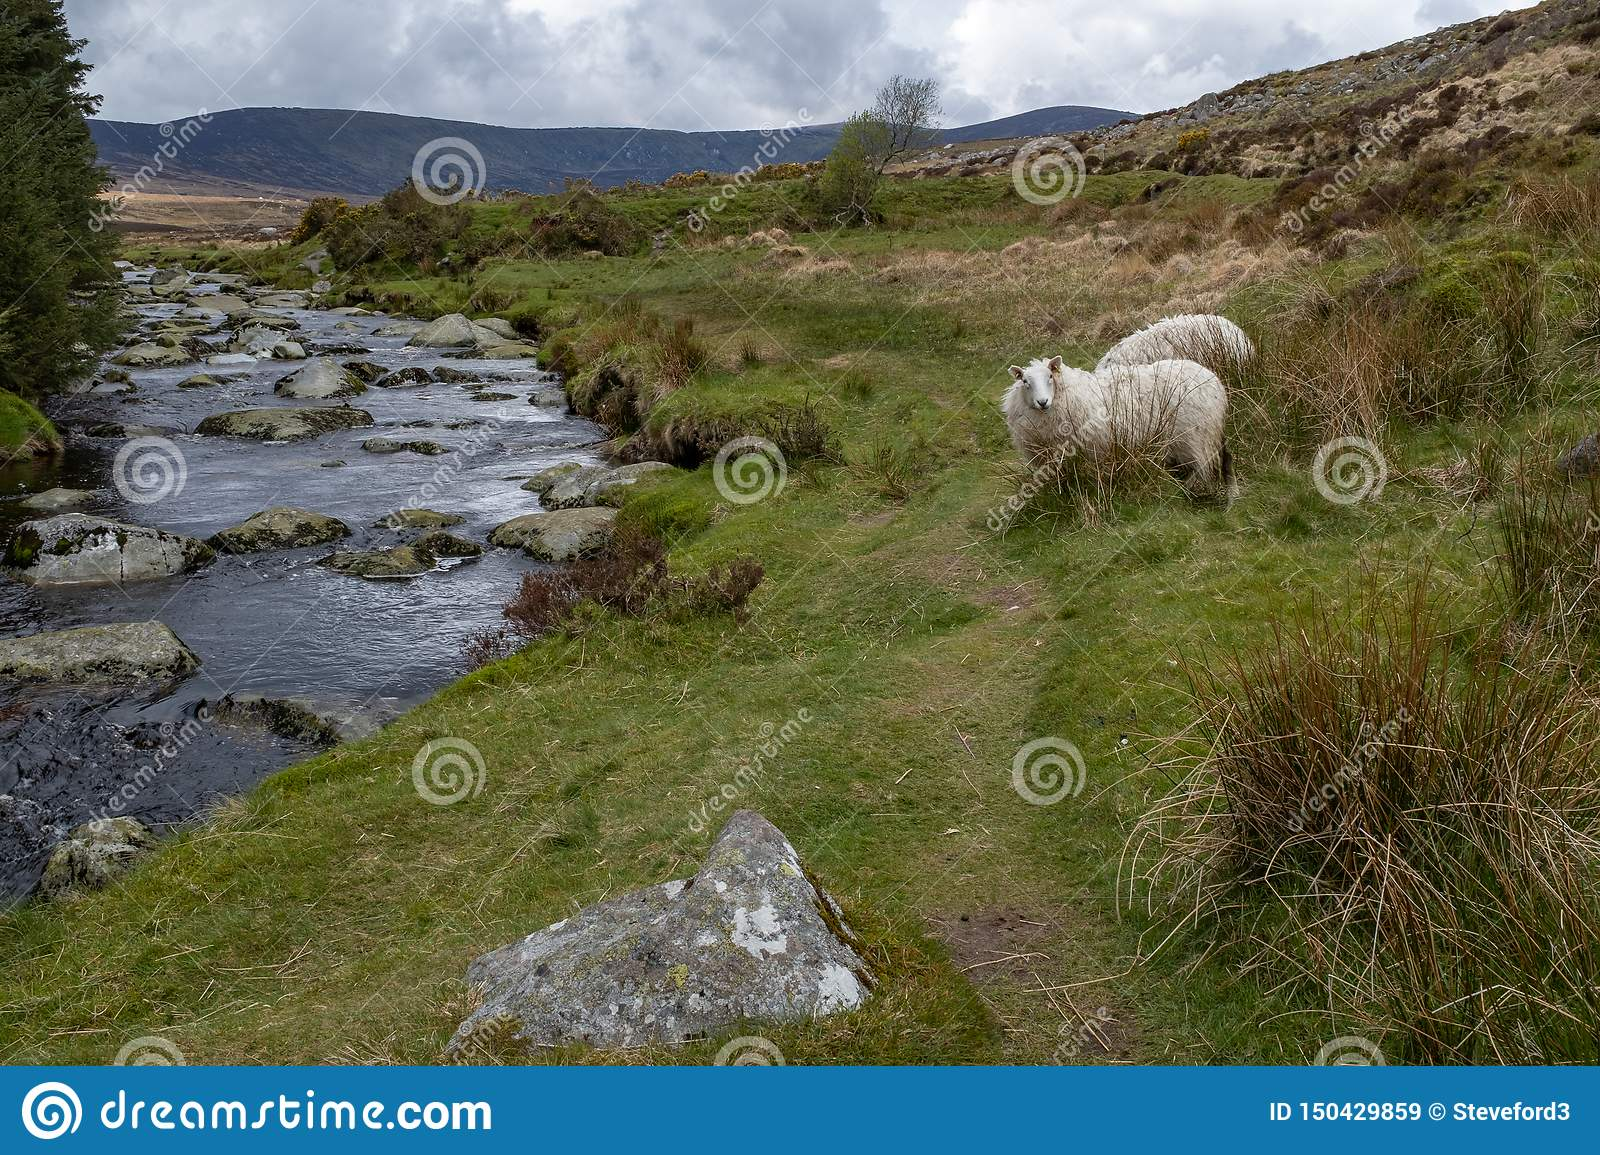 The River Iffey flowing through the Wicklow Gap in County Wicklow, Ireland, sheep staring at the camera